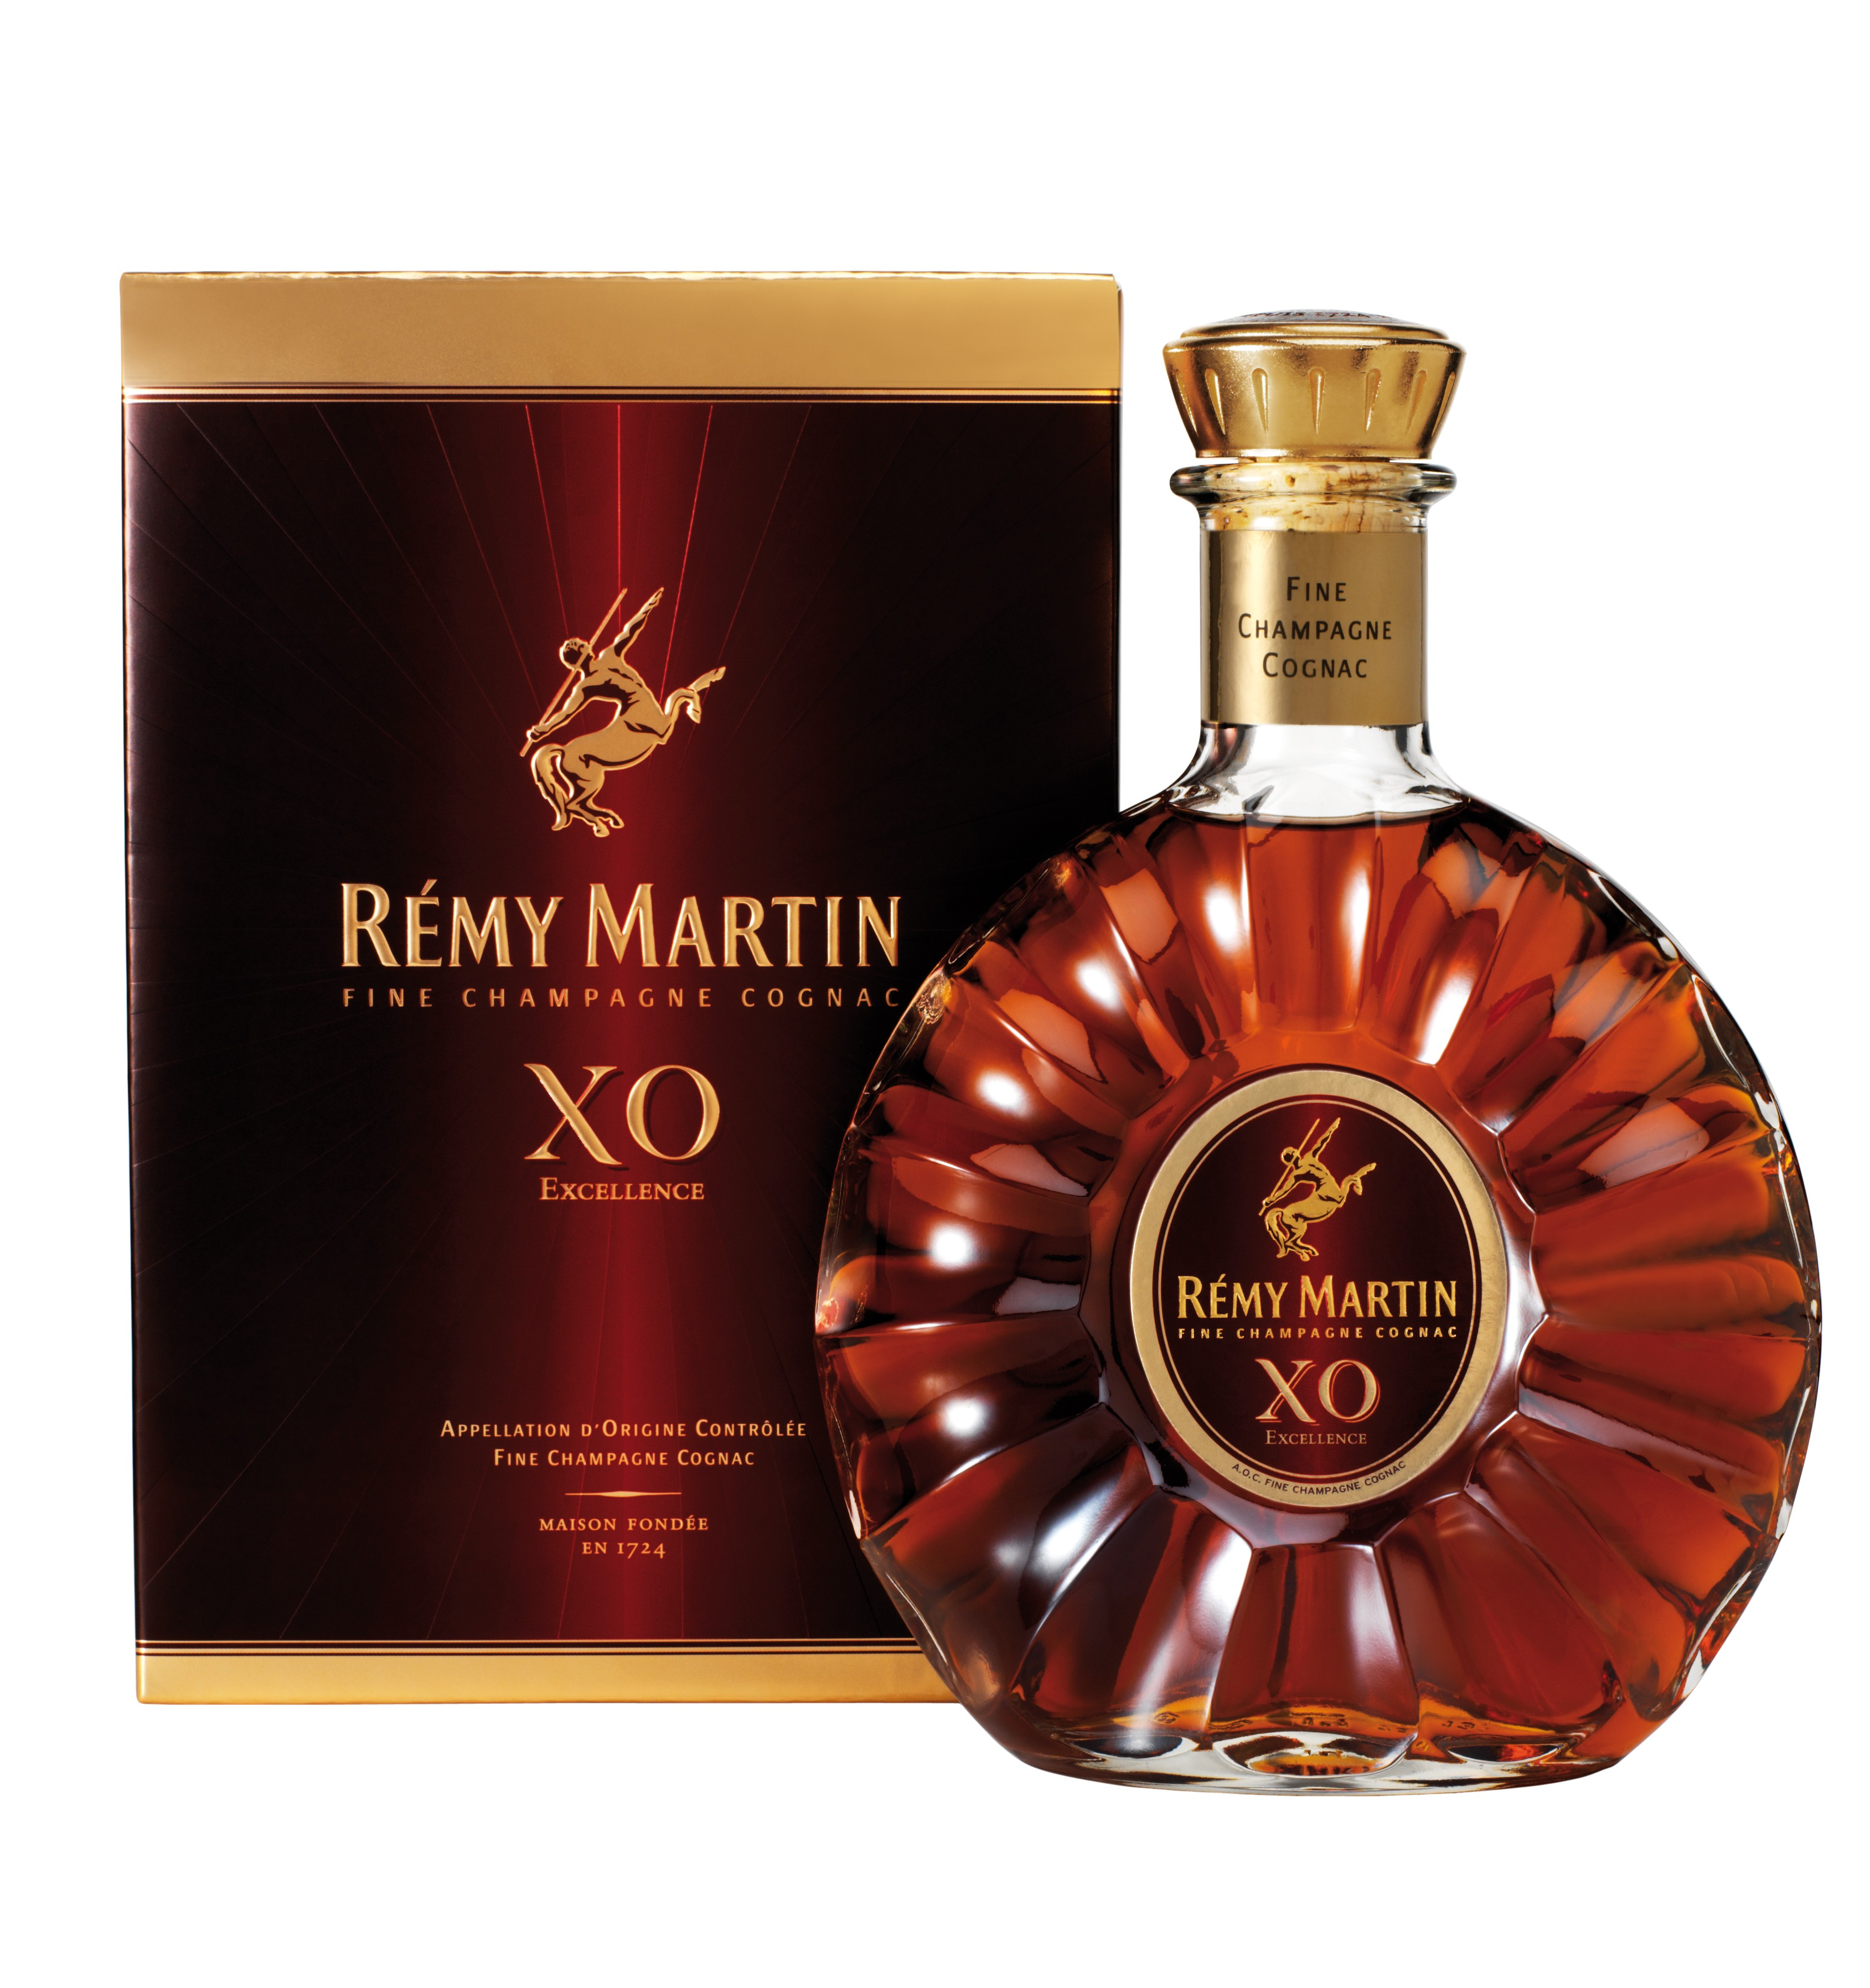 R my martin xo excellence delivery grg wines - Tennessee cognac ...